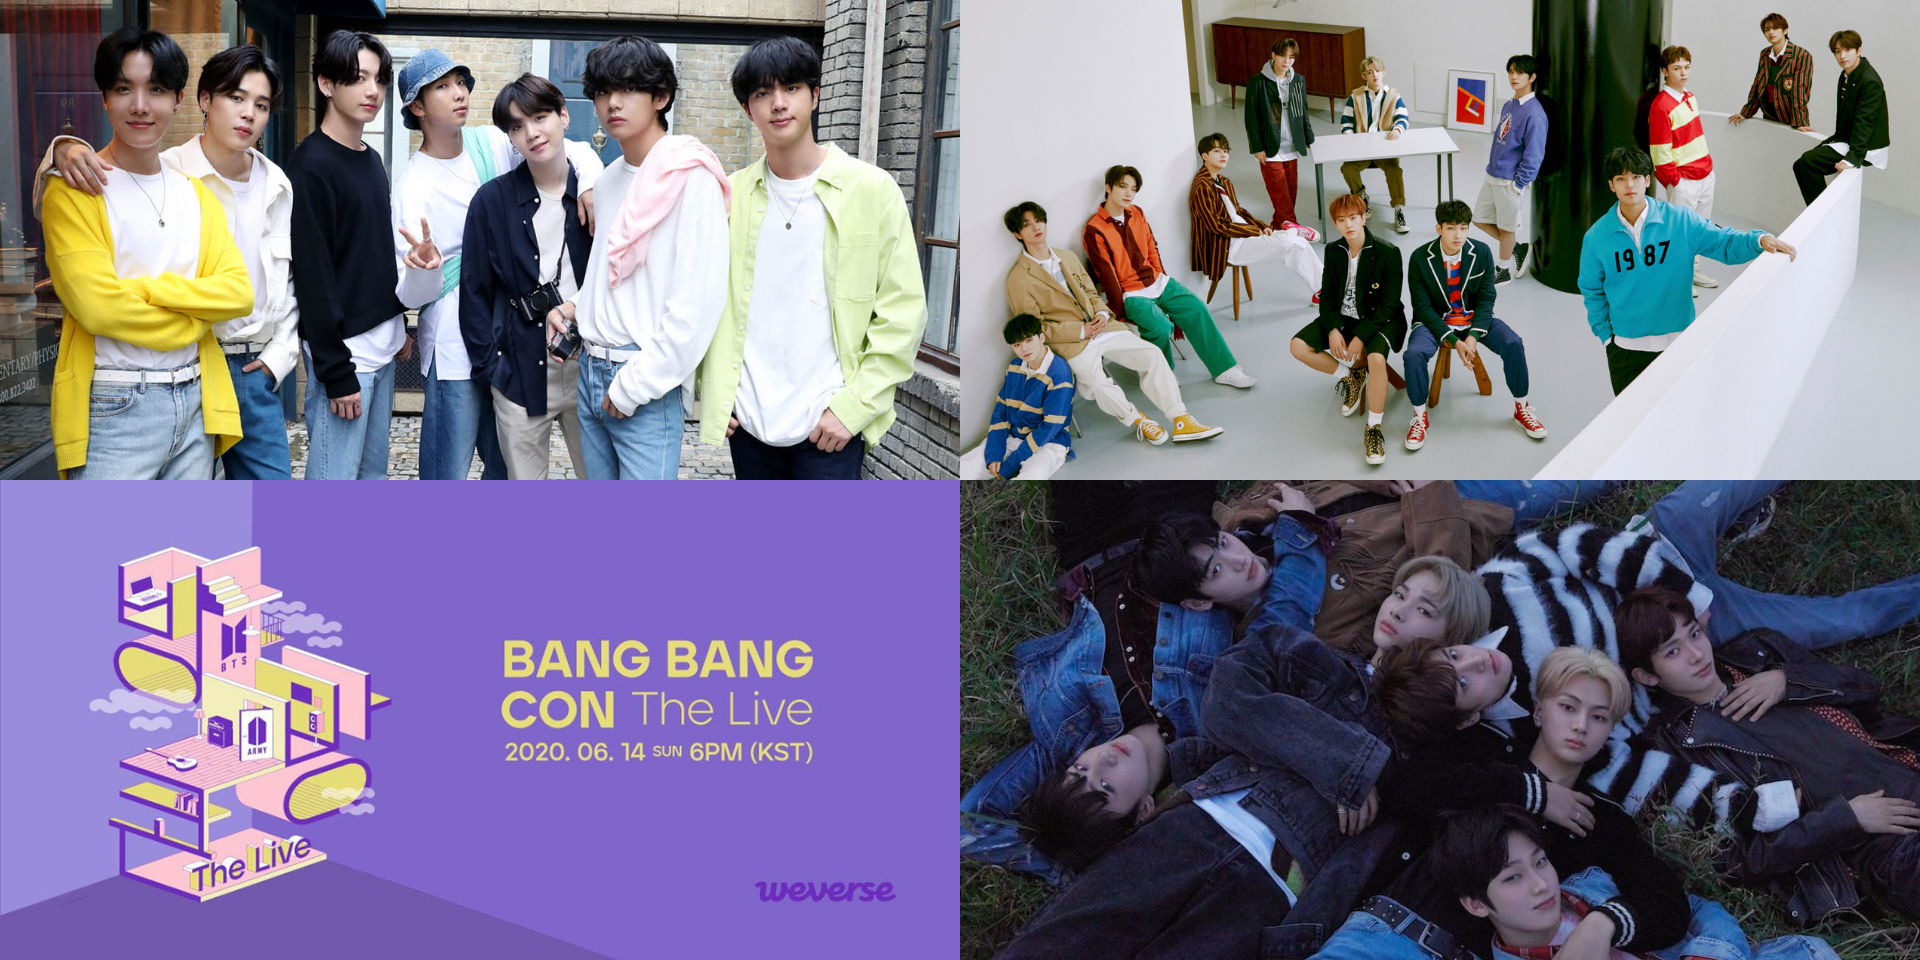 BTS, BANG BANG CON, ENHYPEN, and SEVENTEEN top Weverse fandom trends for 2020